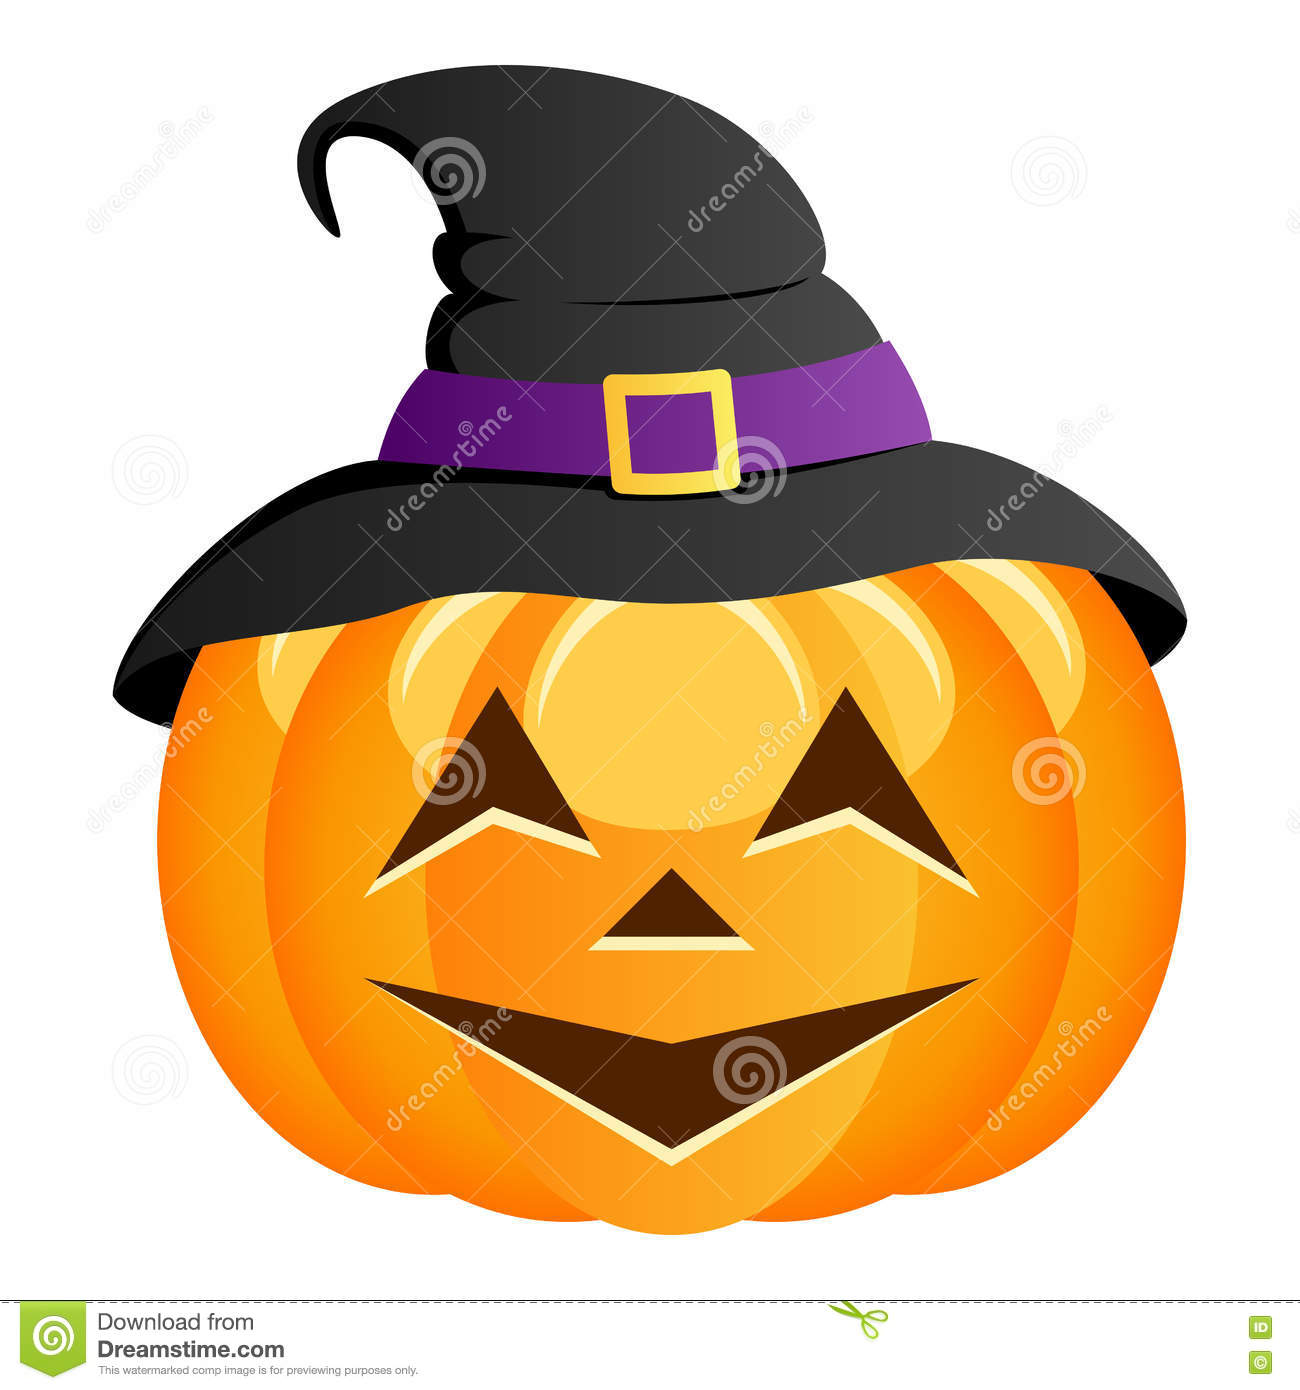 funny halloween pumpkin with witch hat stock vector - illustration